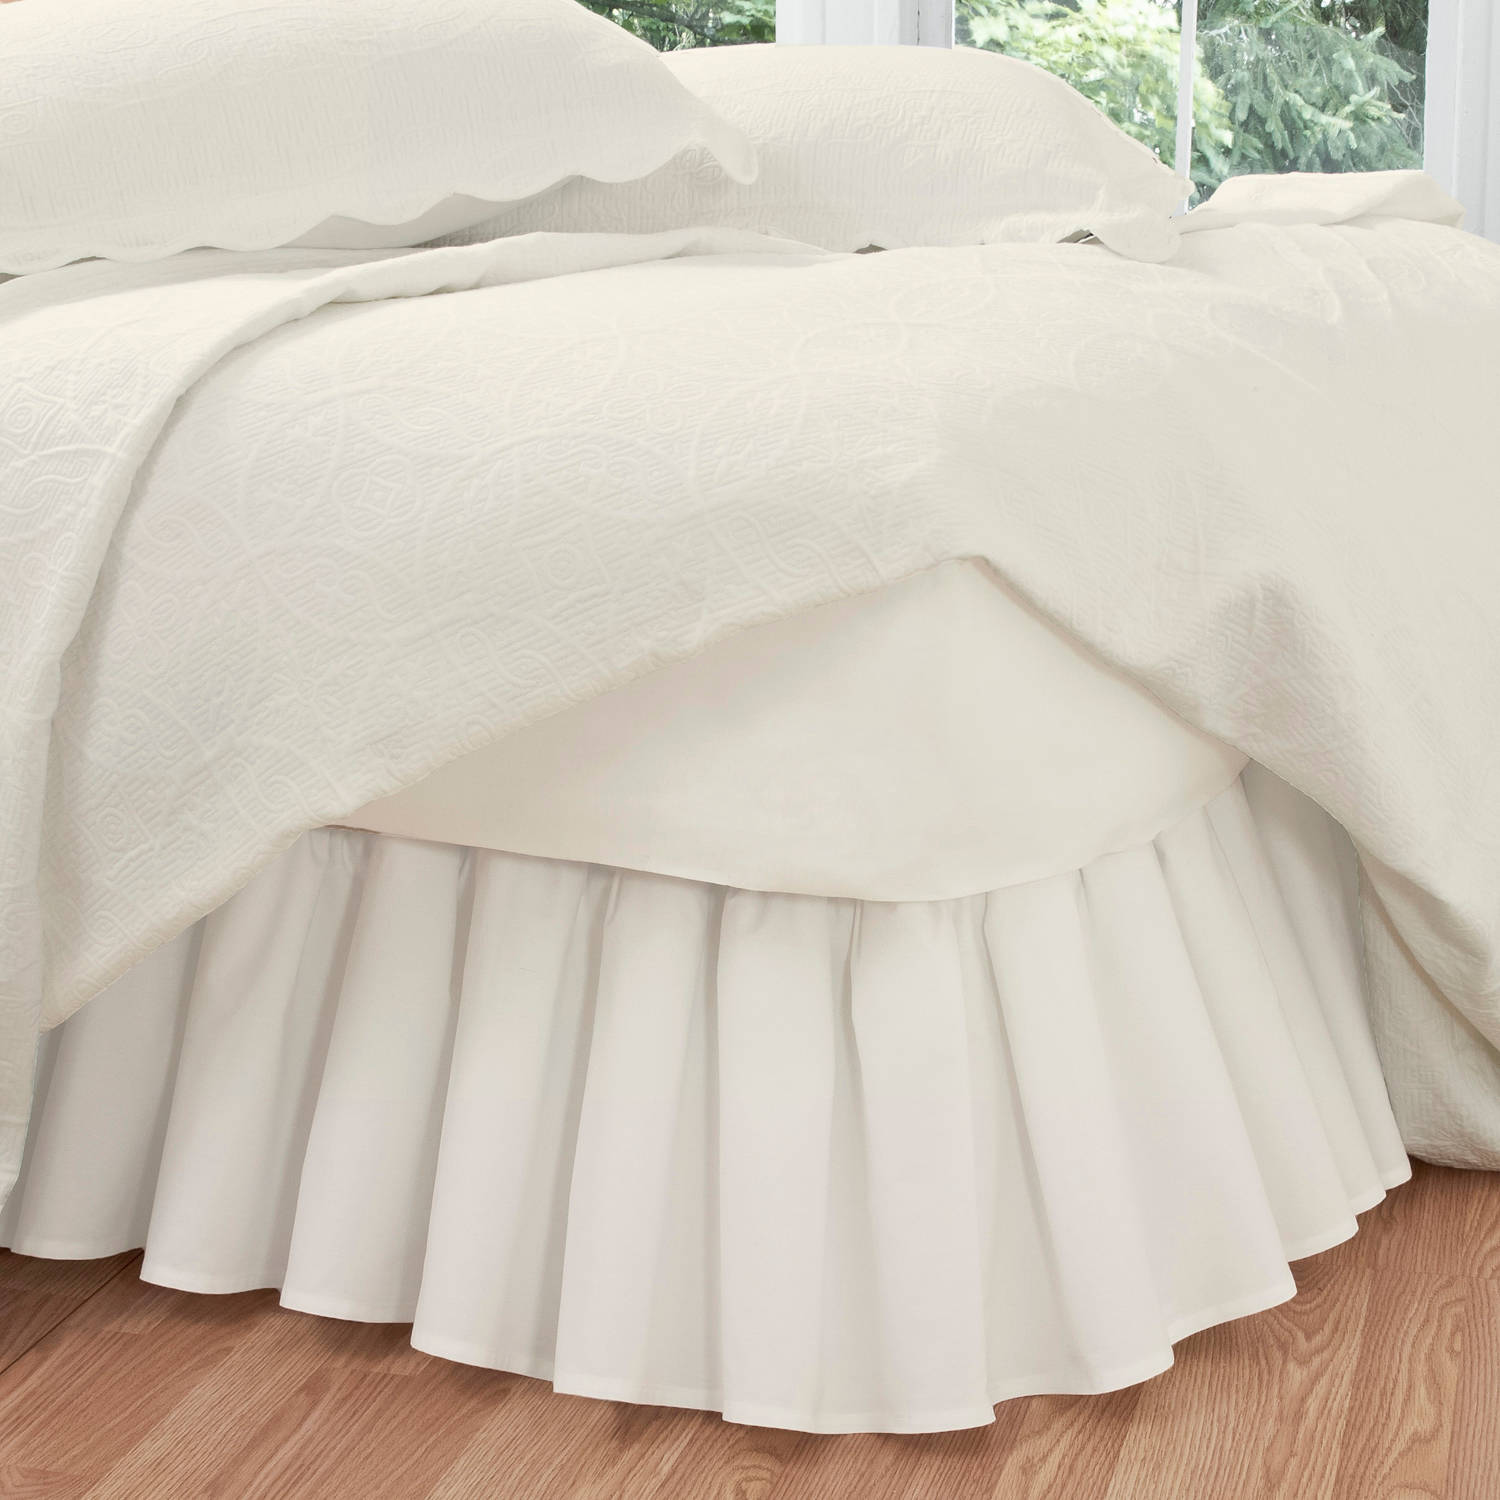 Levinsohn Ruffled Poplin Bedding Bed Skirt